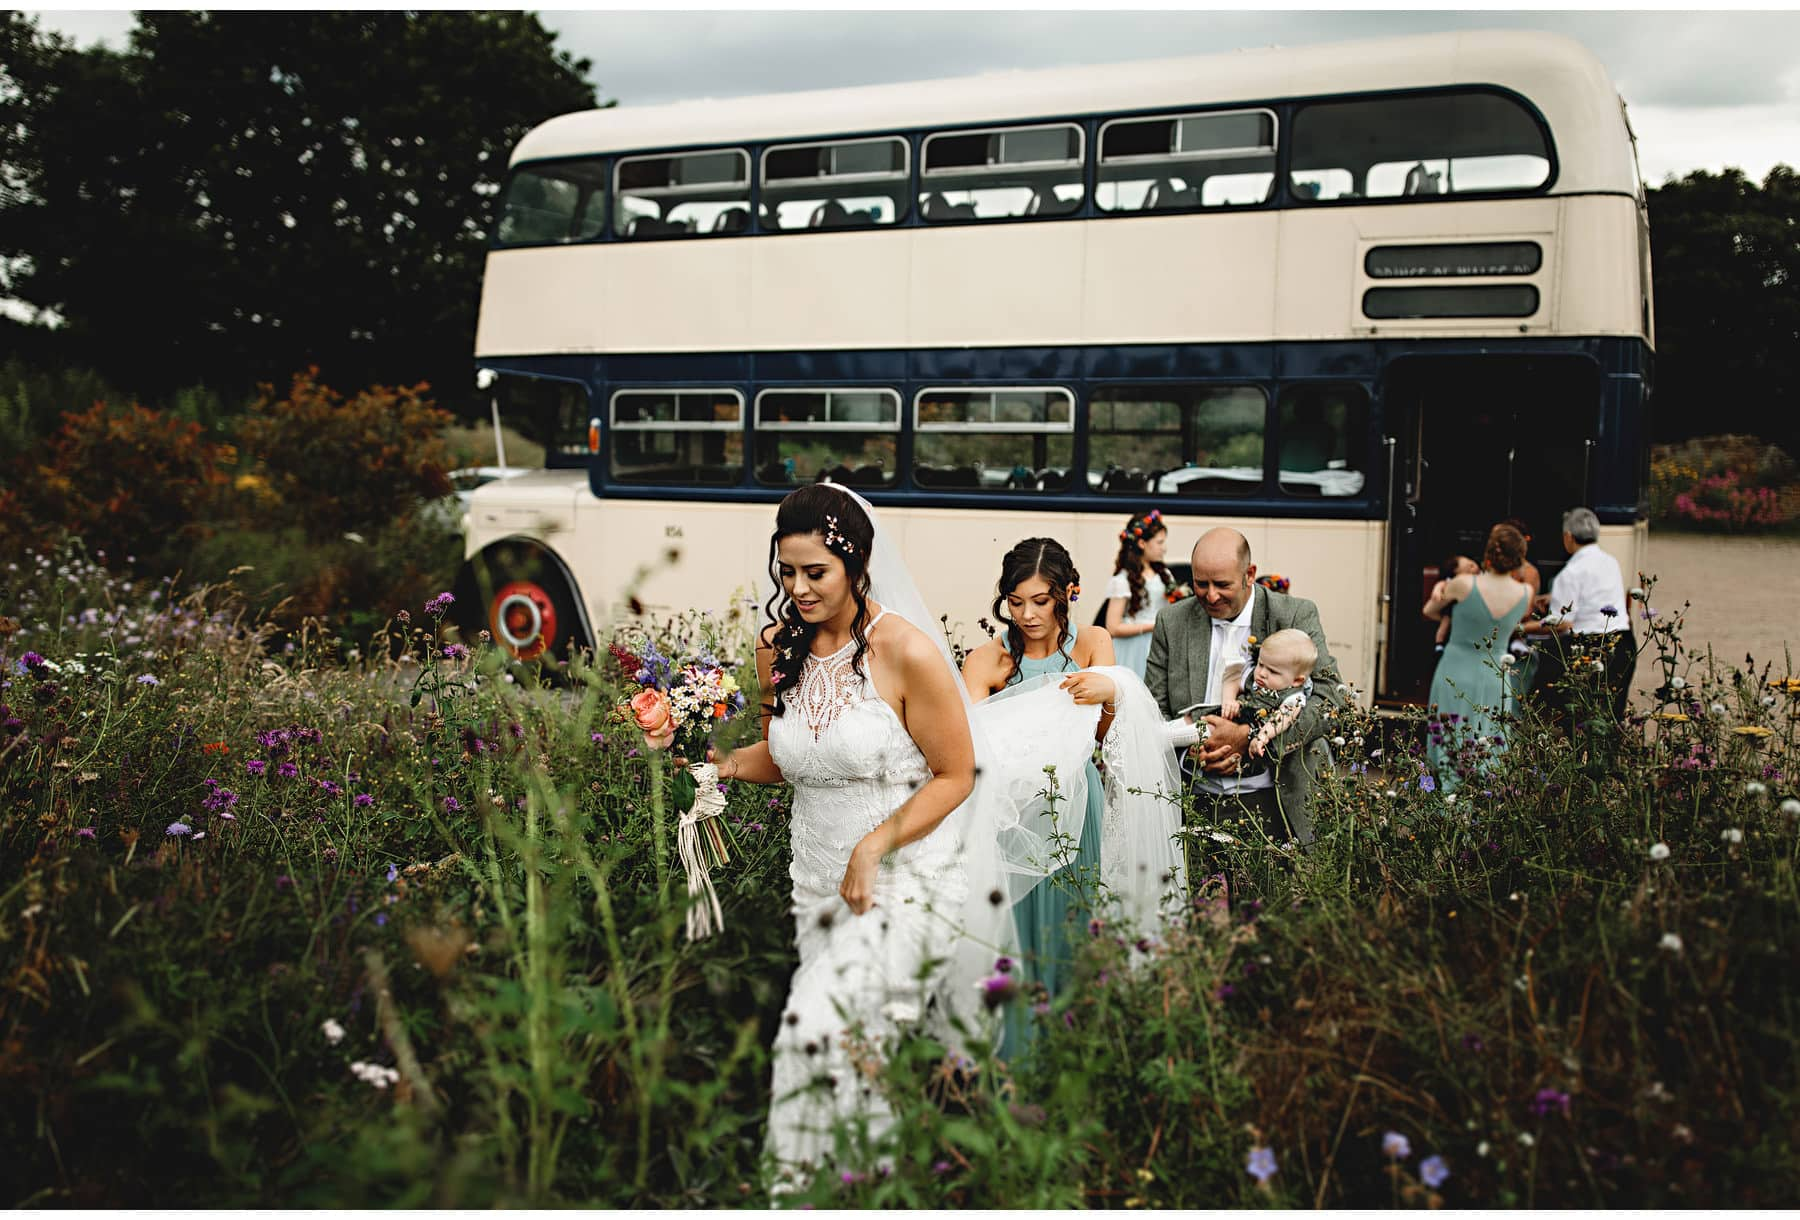 the bride walking from the vintage bus to the ceremony